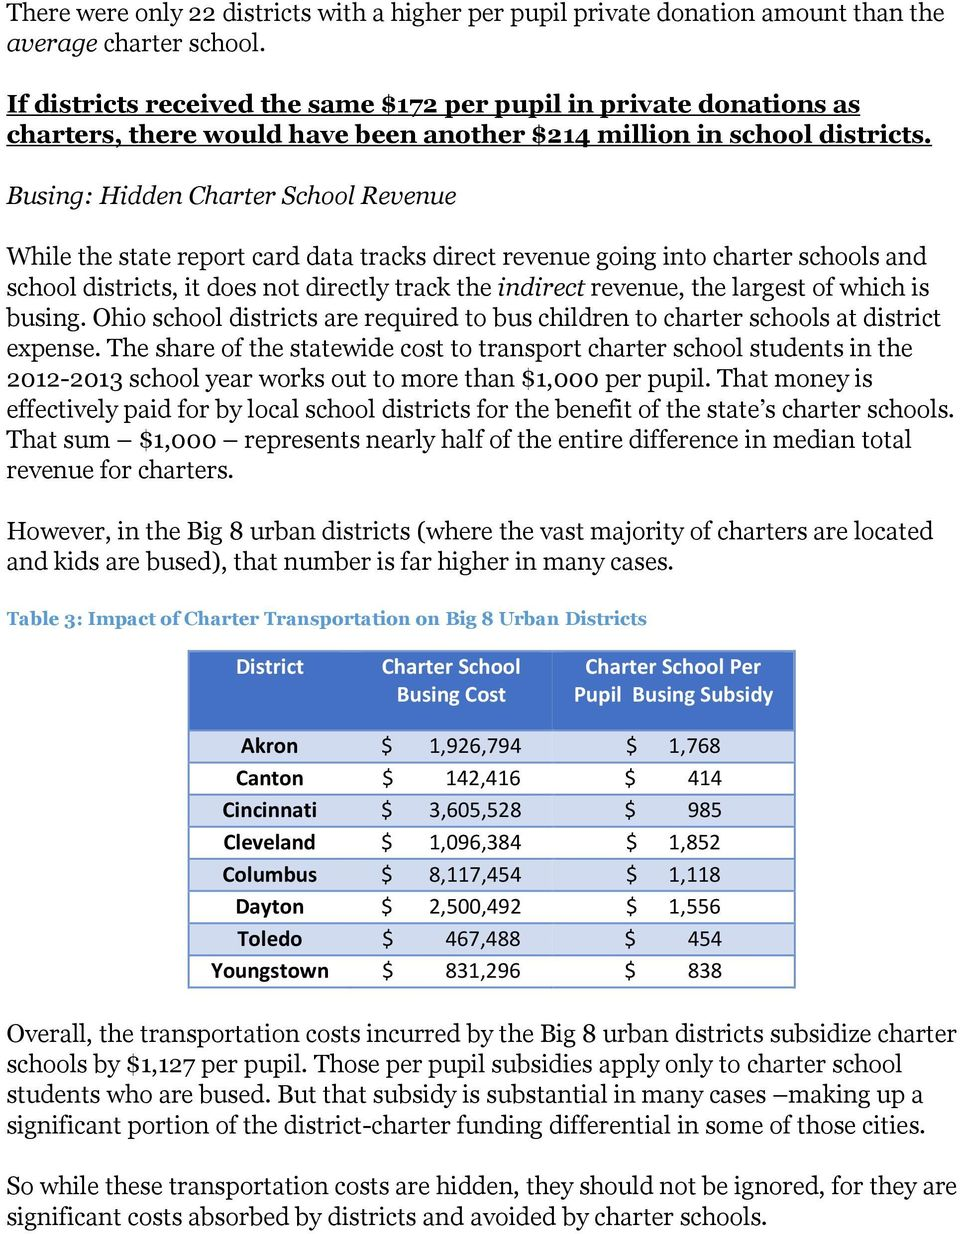 Busing: Hidden Charter School Revenue While the state report card data tracks direct revenue going into charter schools and school districts, it does not directly track the indirect revenue, the